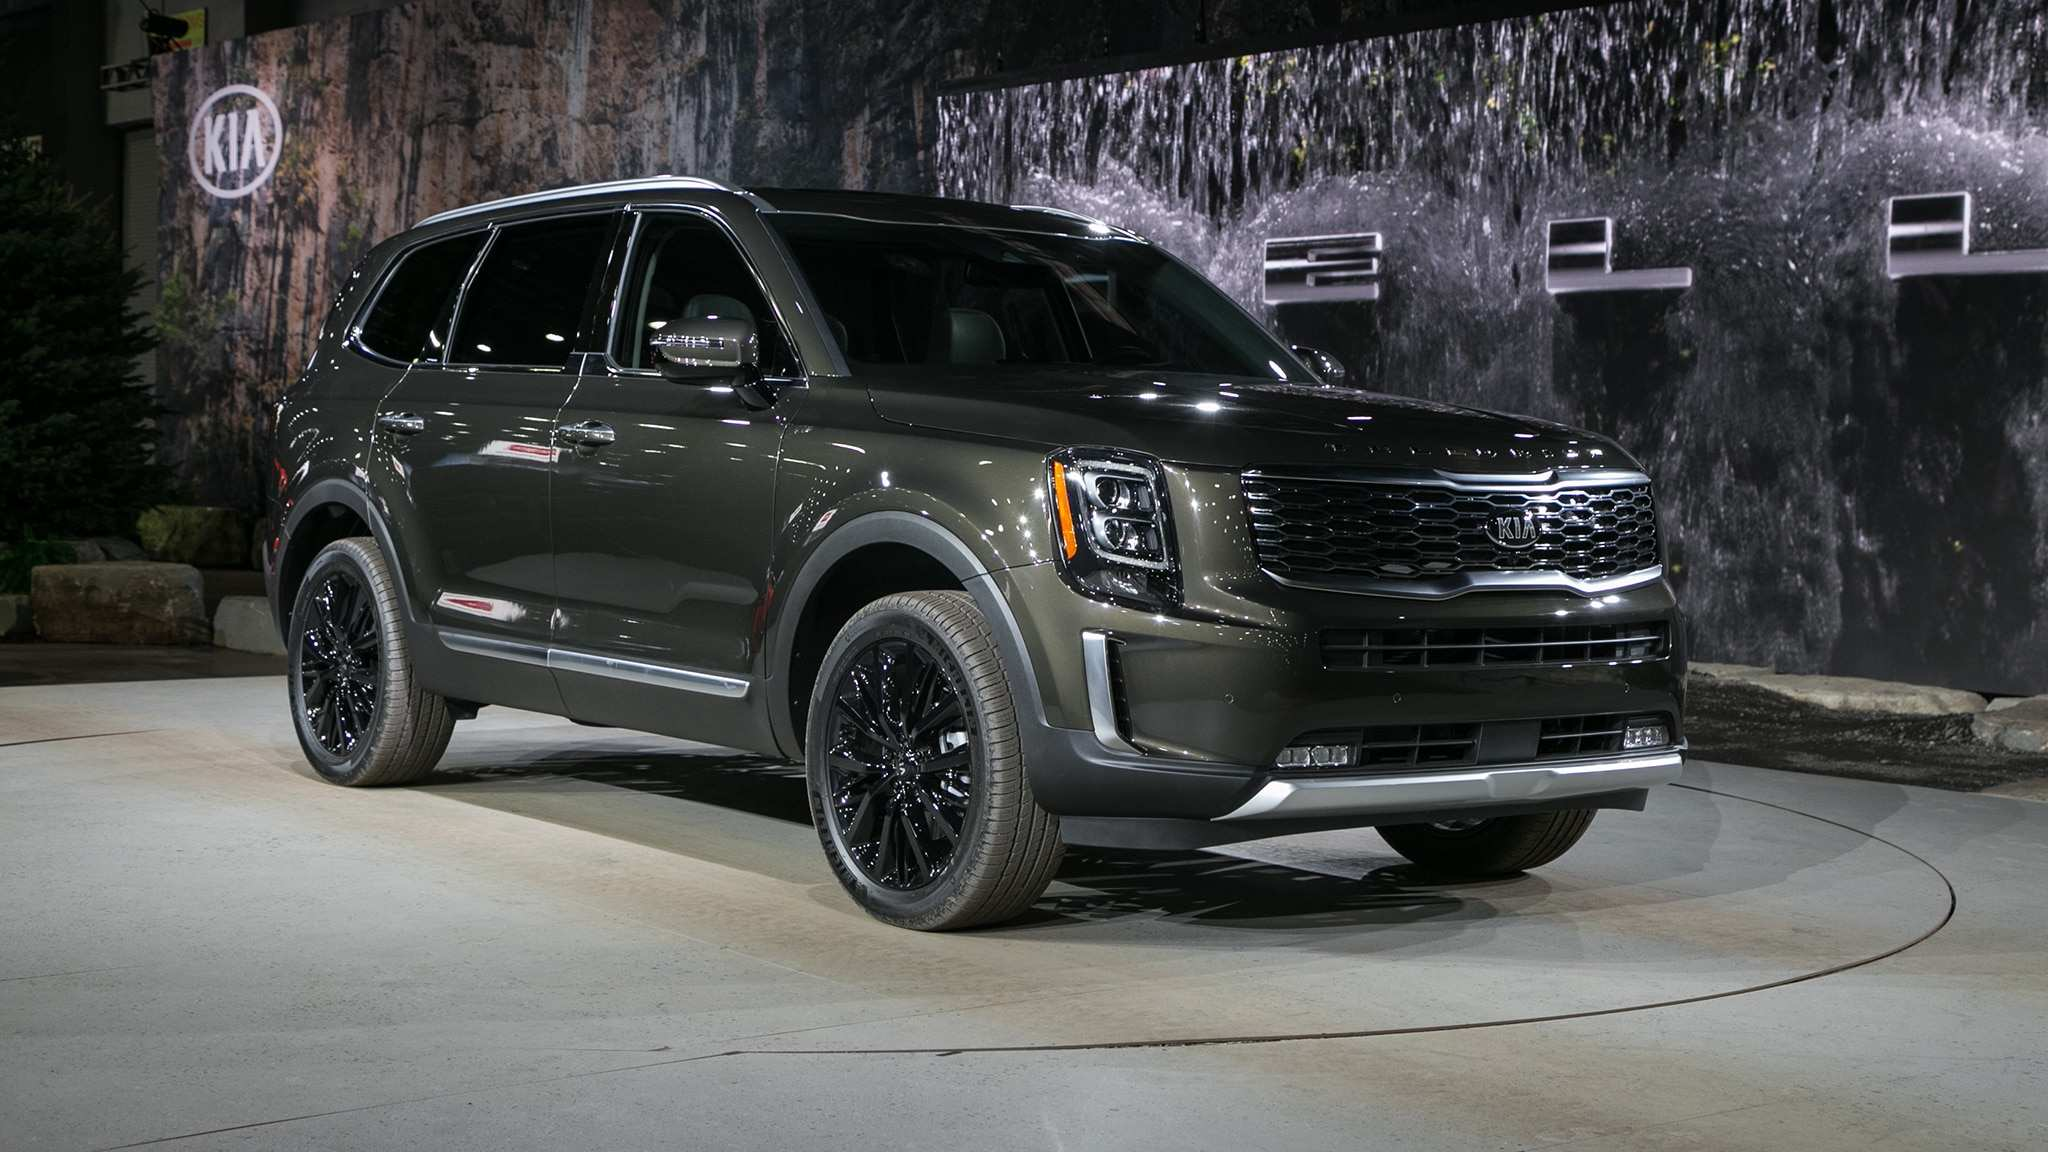 12 All New 2020 Kia Telluride Brochure Pdf Exterior and Interior by 2020 Kia Telluride Brochure Pdf